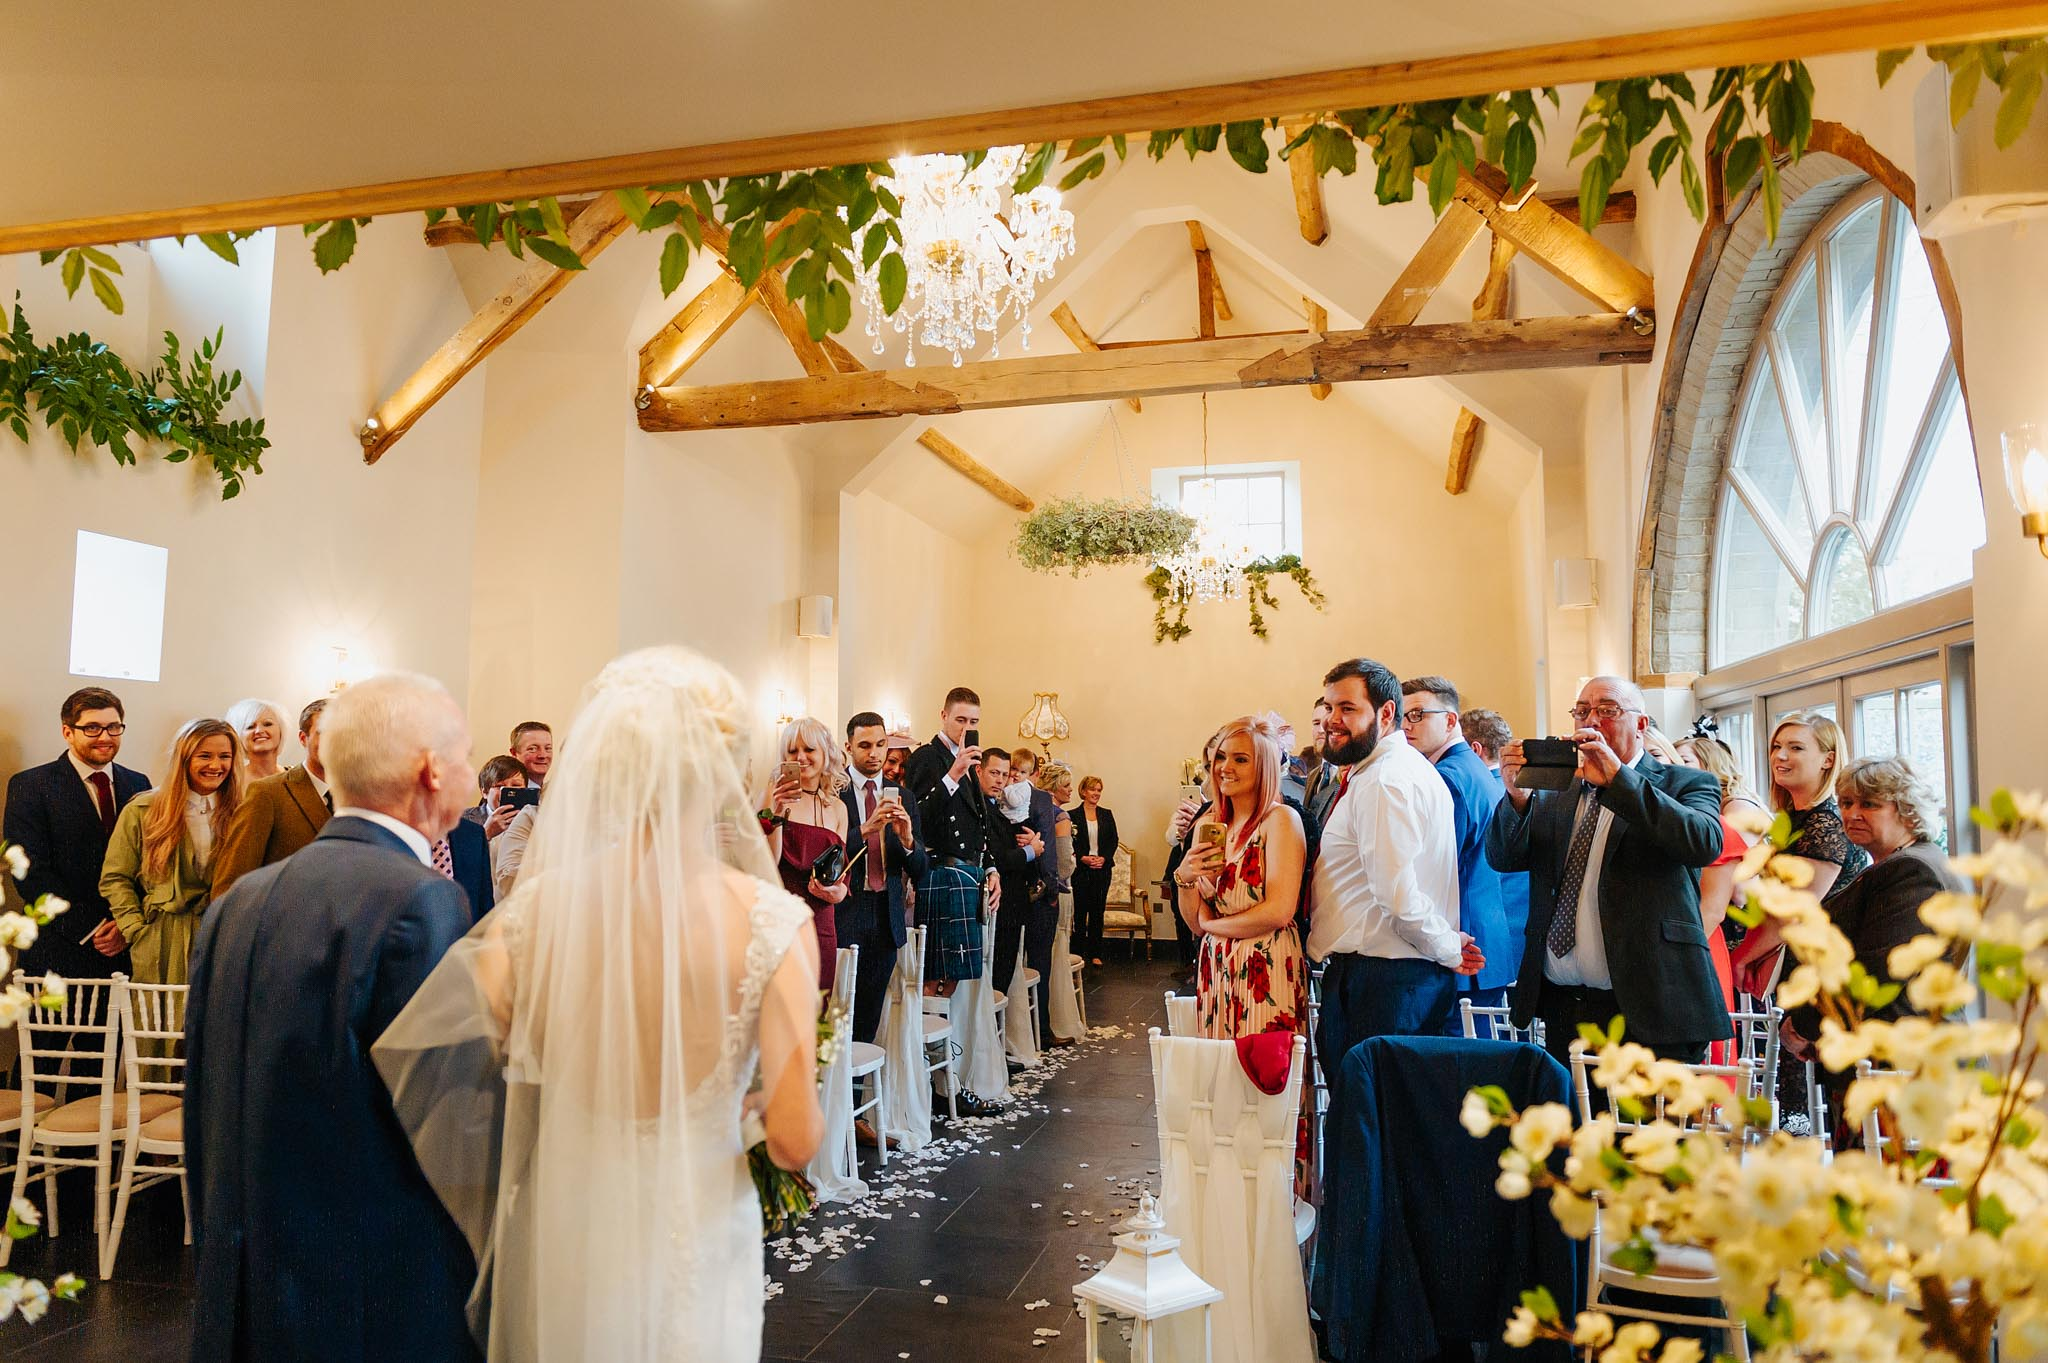 Lemore Manor wedding, Herefordshire - West Midlands | Sadie + Ken 31